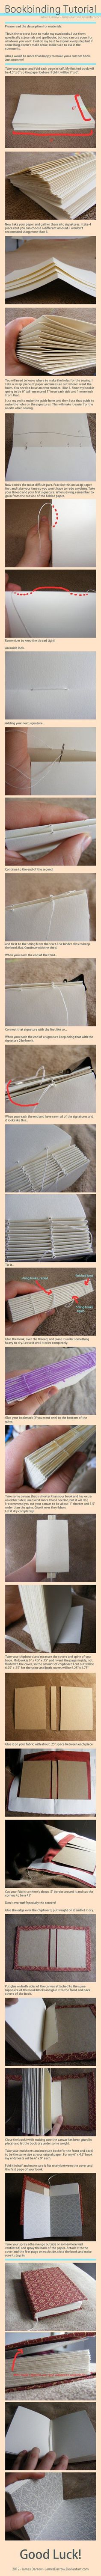 Book binding tutorial.